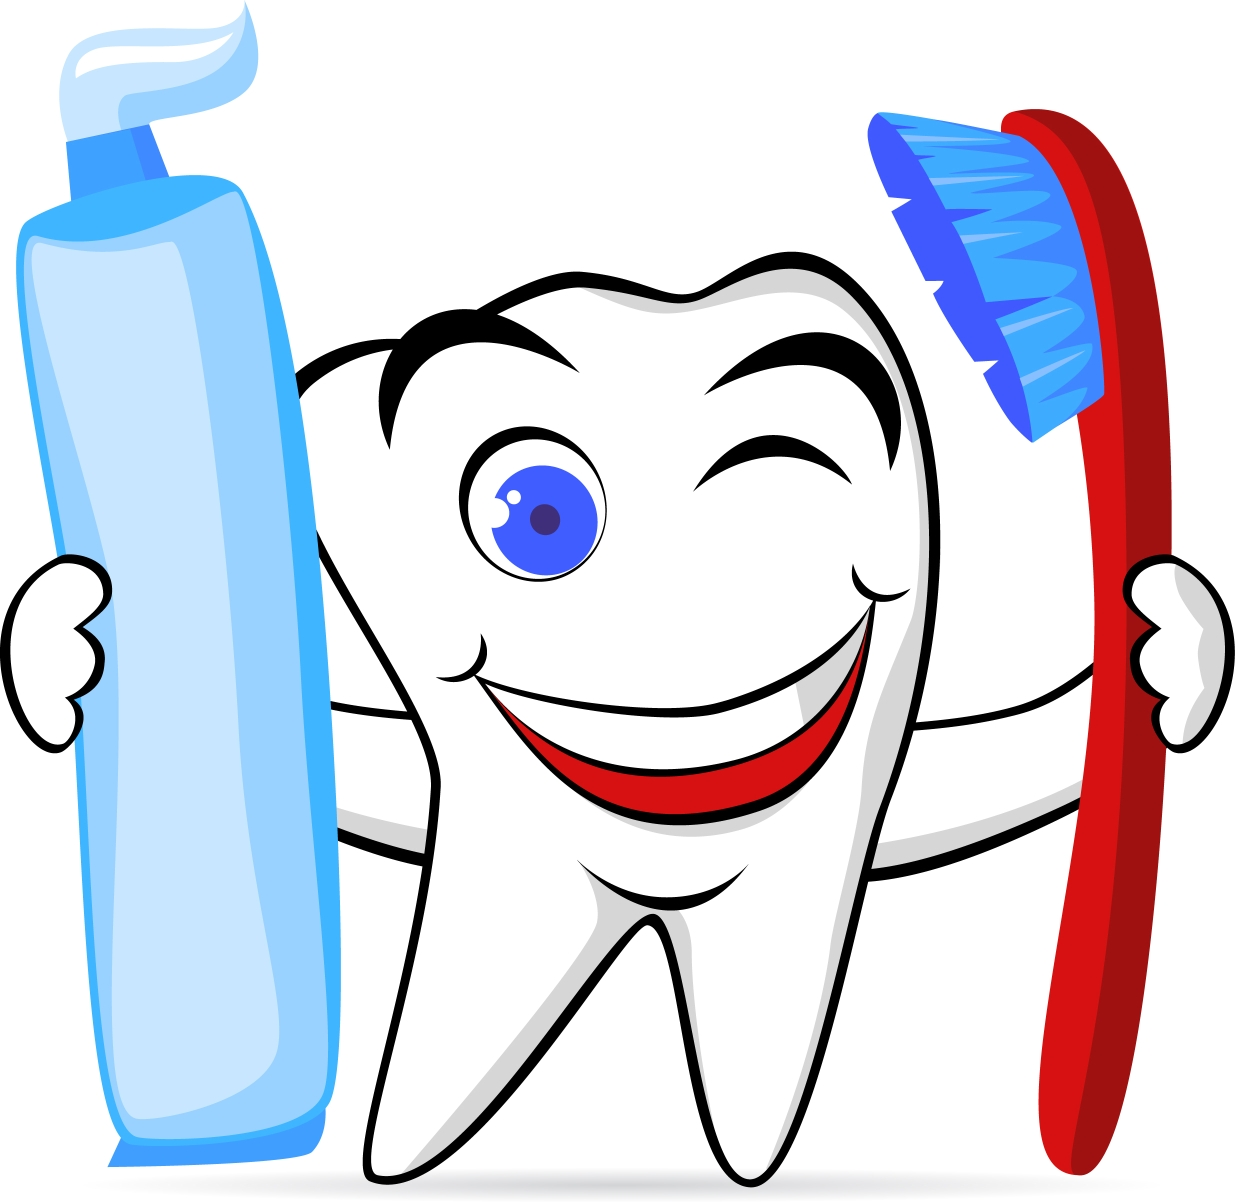 1235x1202 Opulent Design Ideas Clipart Teeth Dirty Bad Dentist Theme Smile